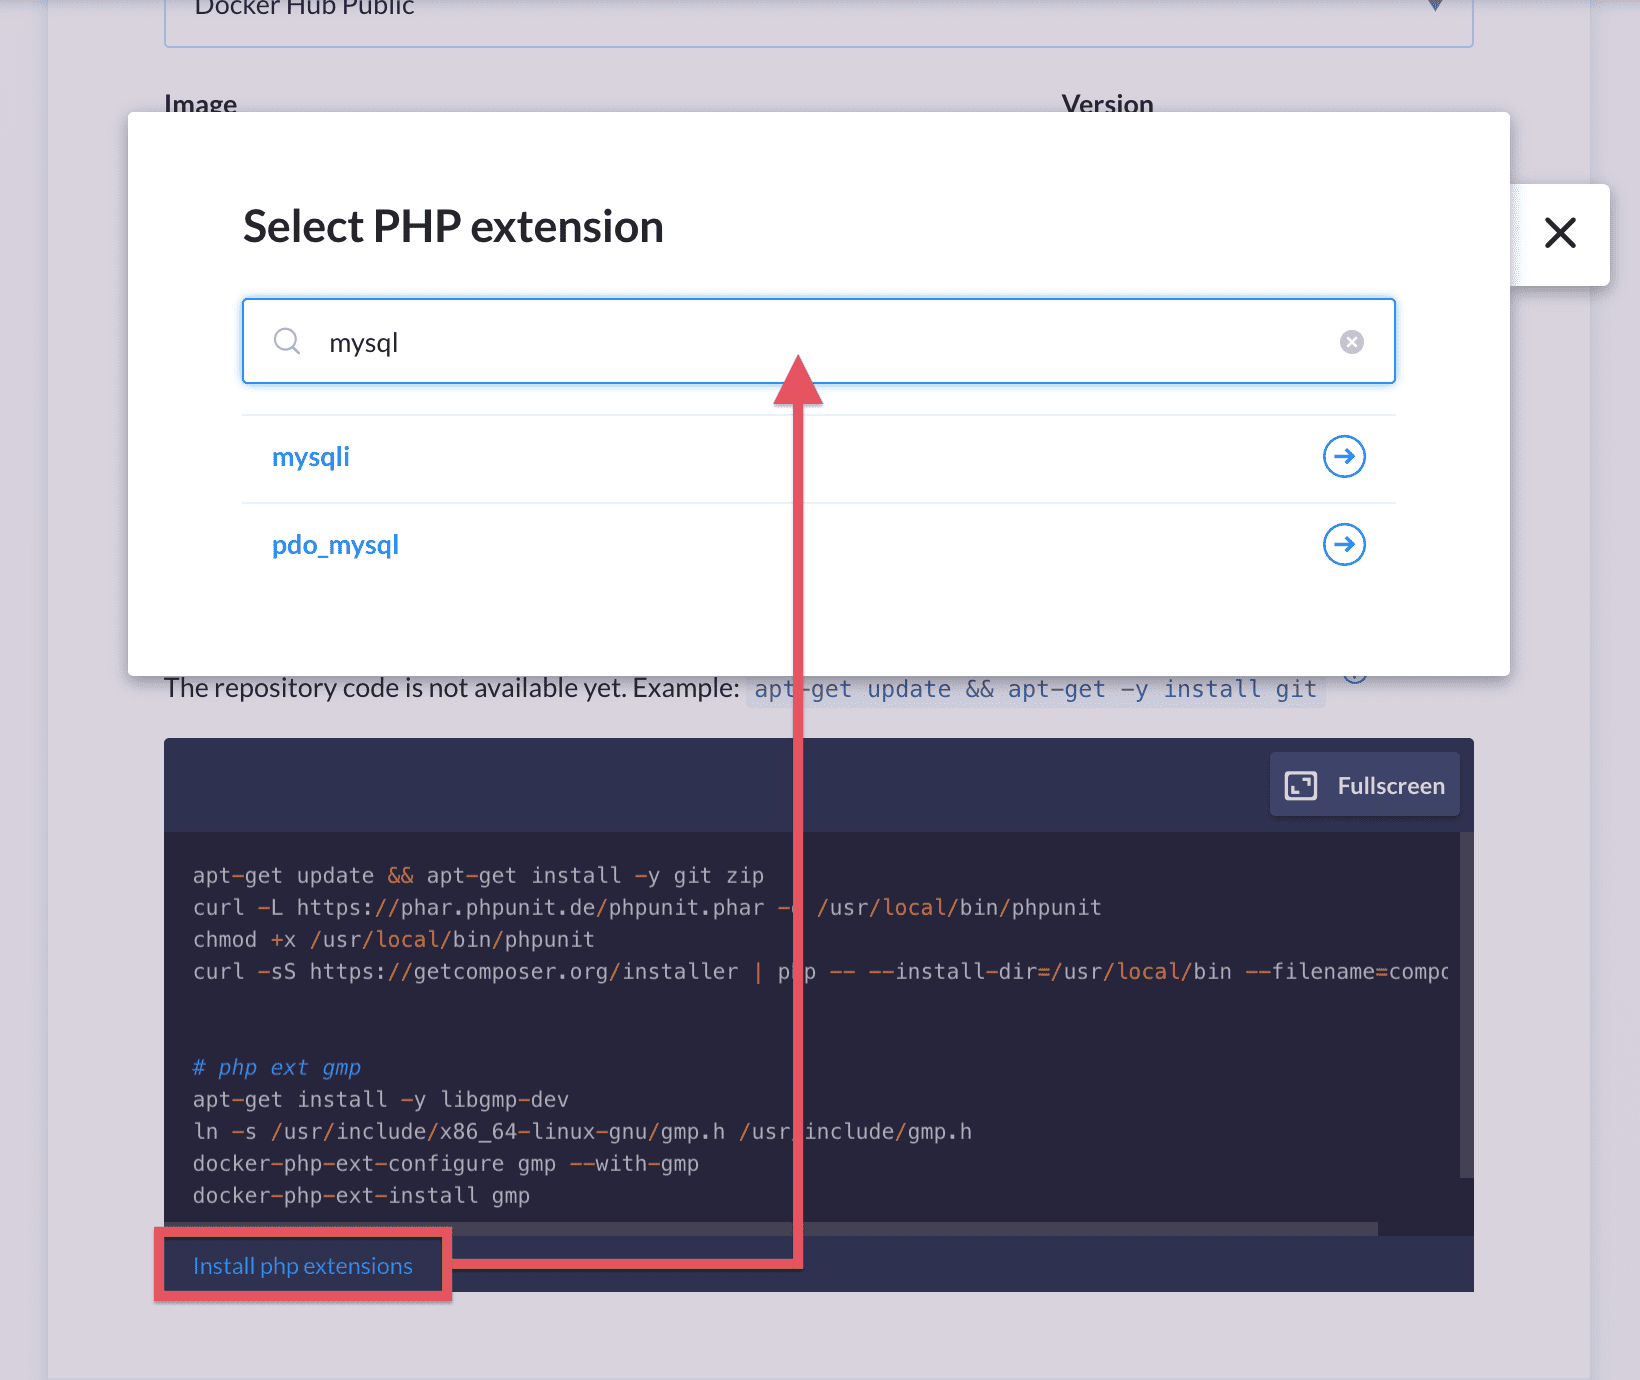 Selecting PHP extension